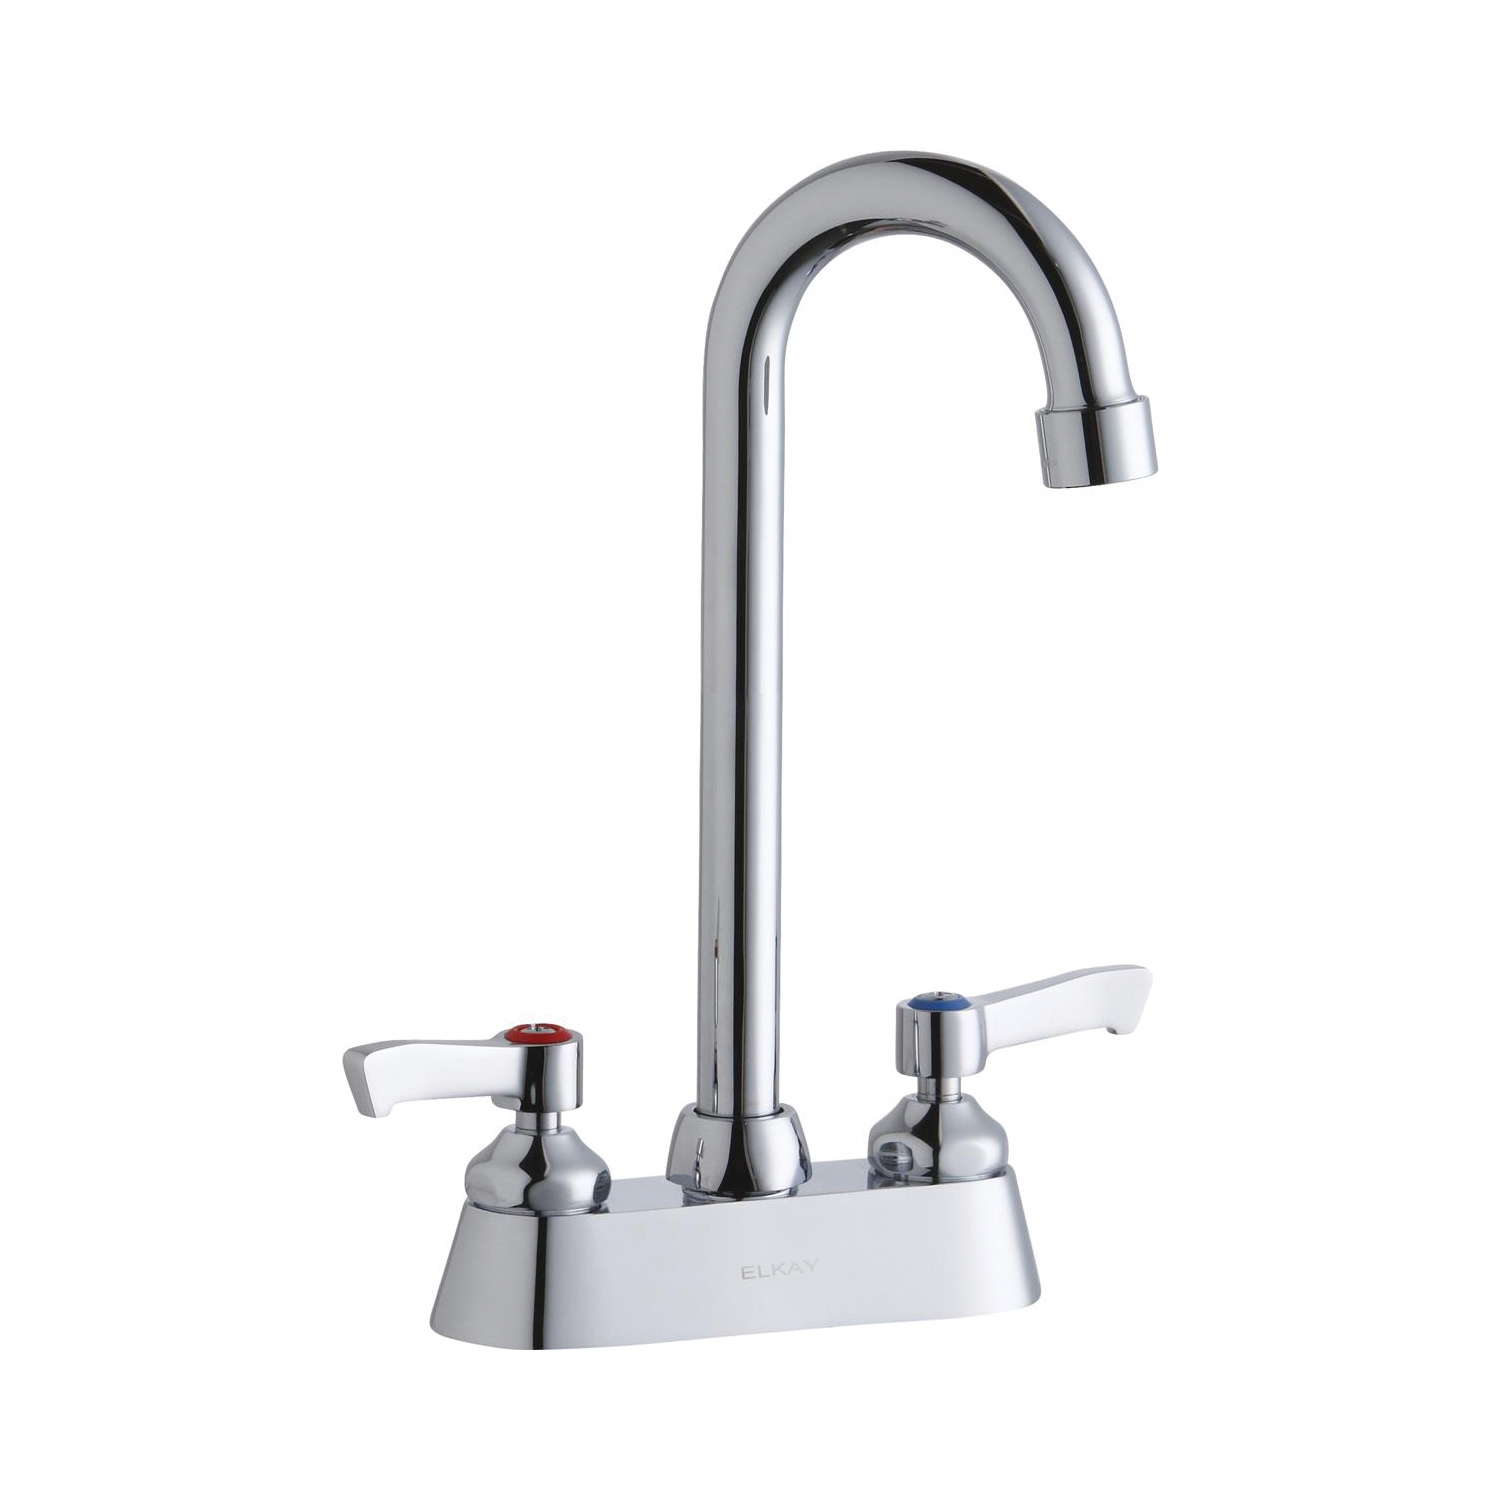 Elkay® LK406GN05L2 Centerset Bathroom Faucet, Chrome Plated, 2 Handles, 1.5 gpm